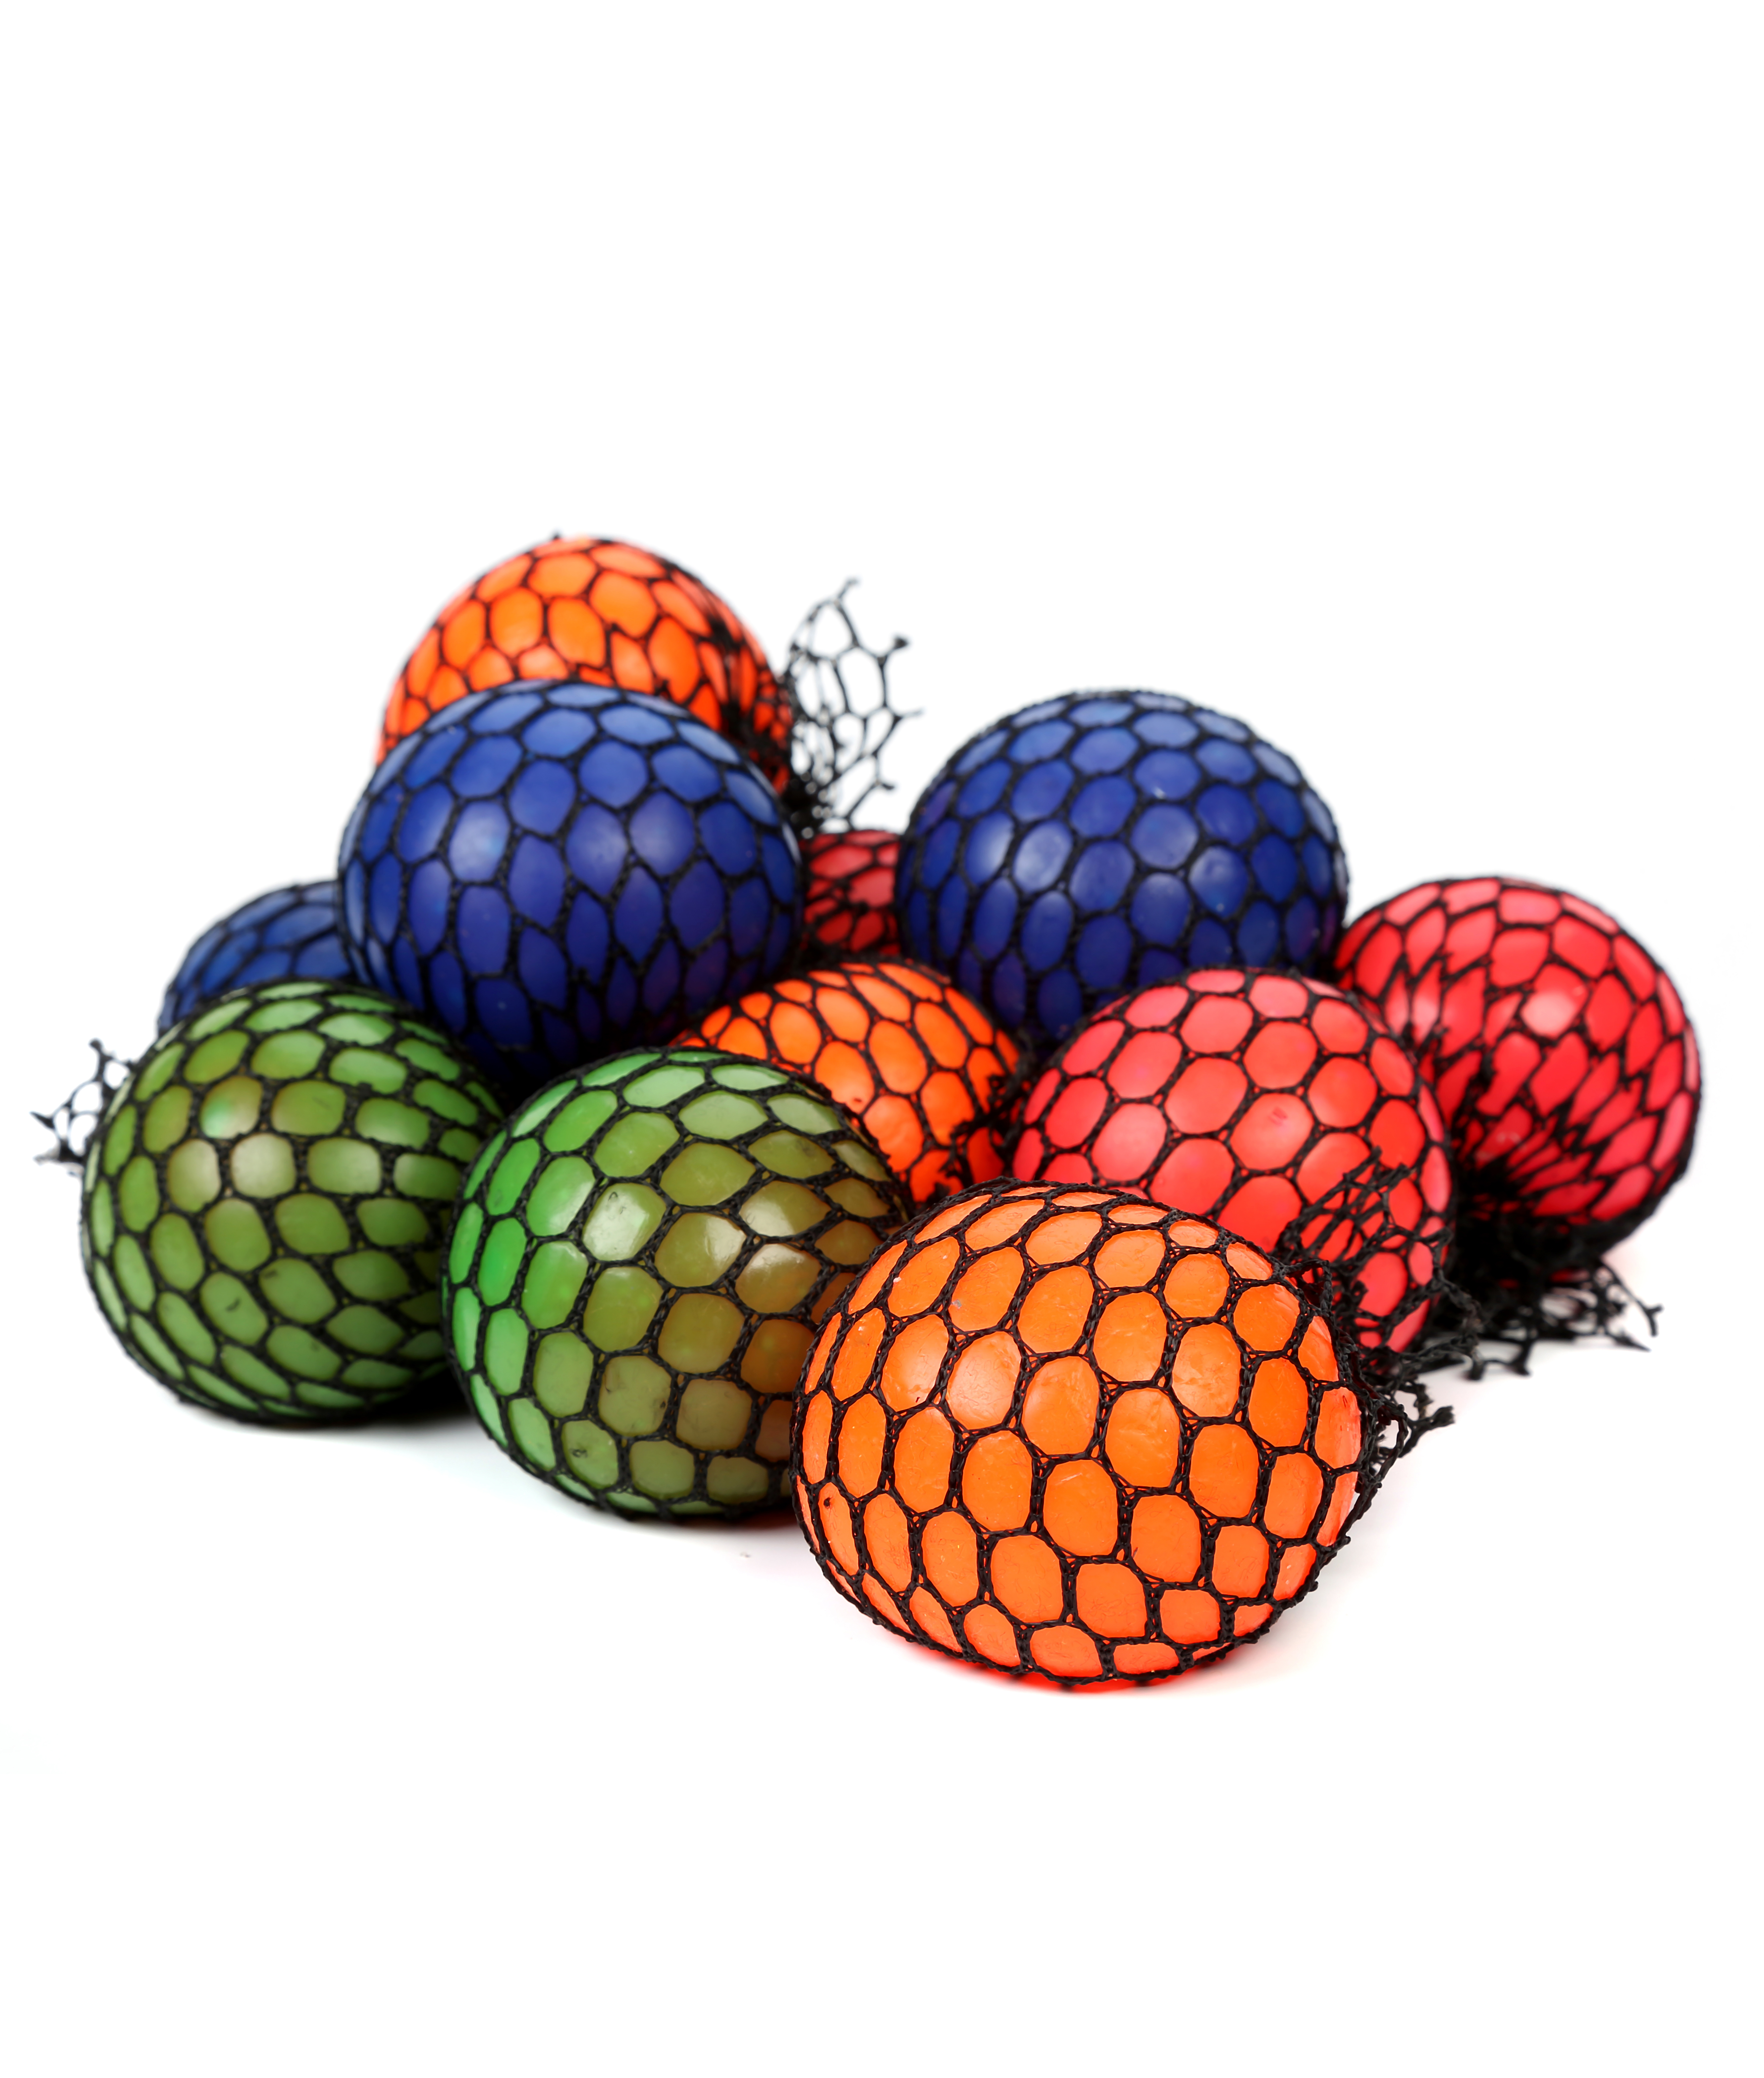 2.4 Inch Mesh Squishy Ball - Assorted